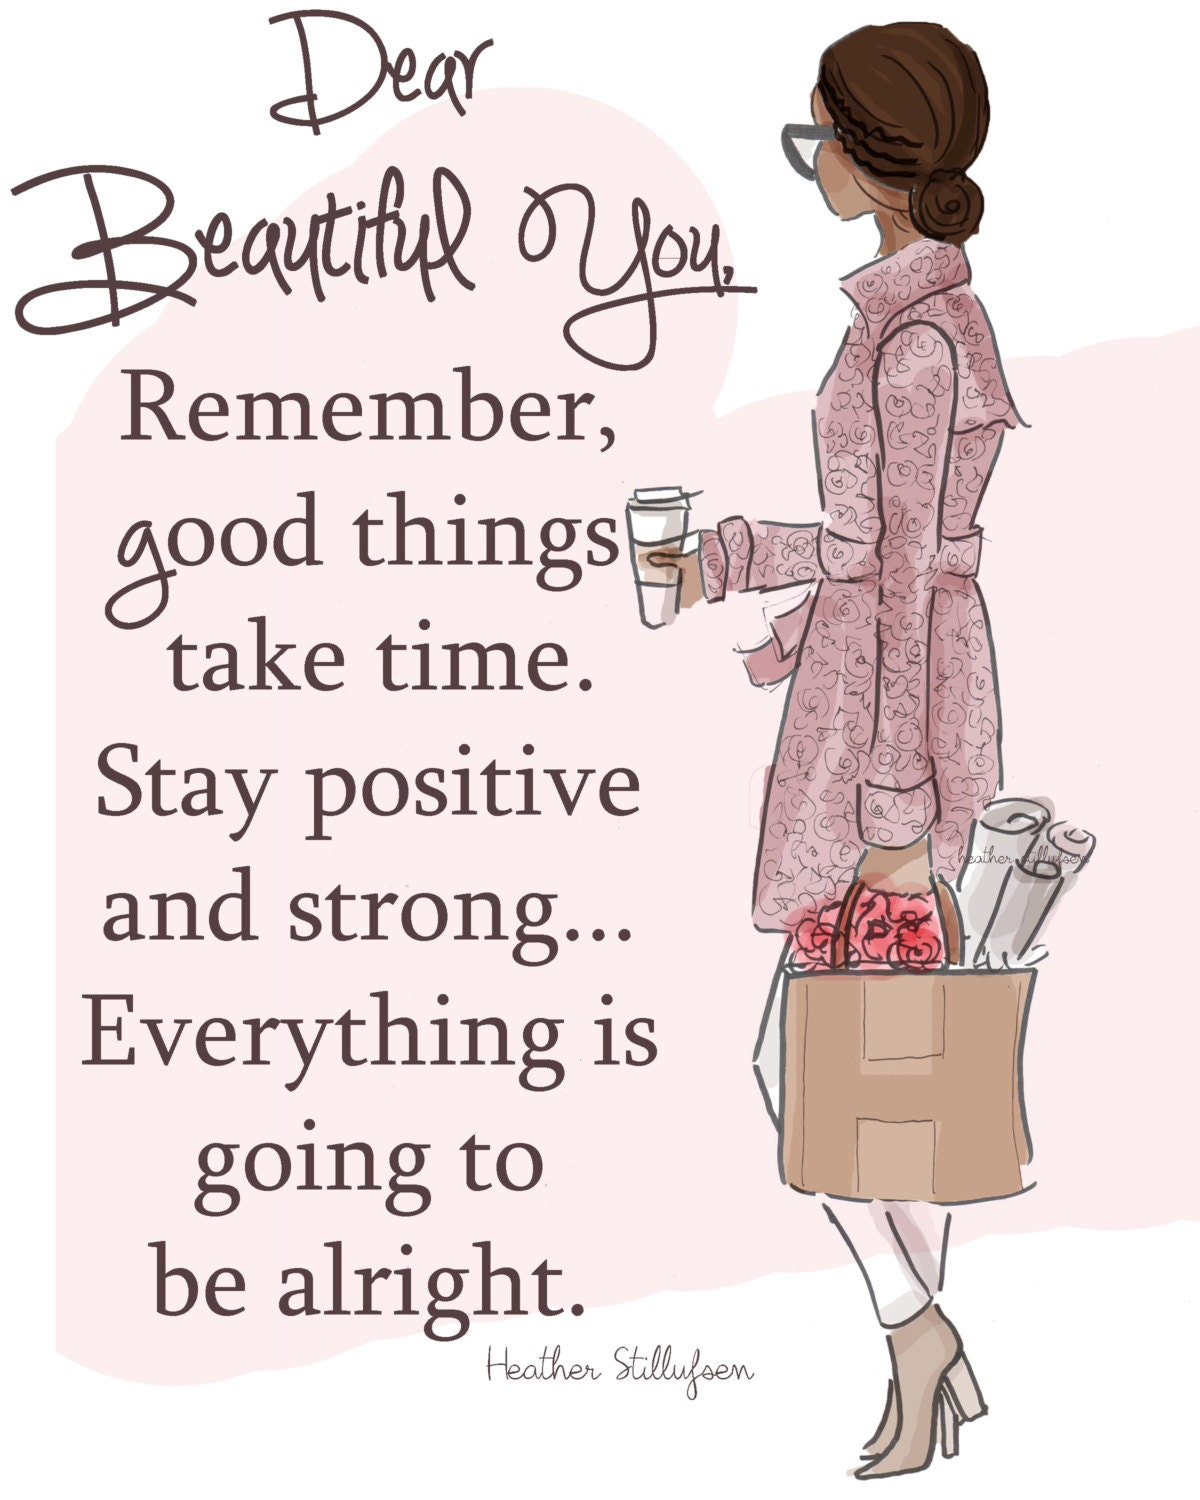 Positive Quotes For Women Inspirational Art For Women Quotes For Women Stay